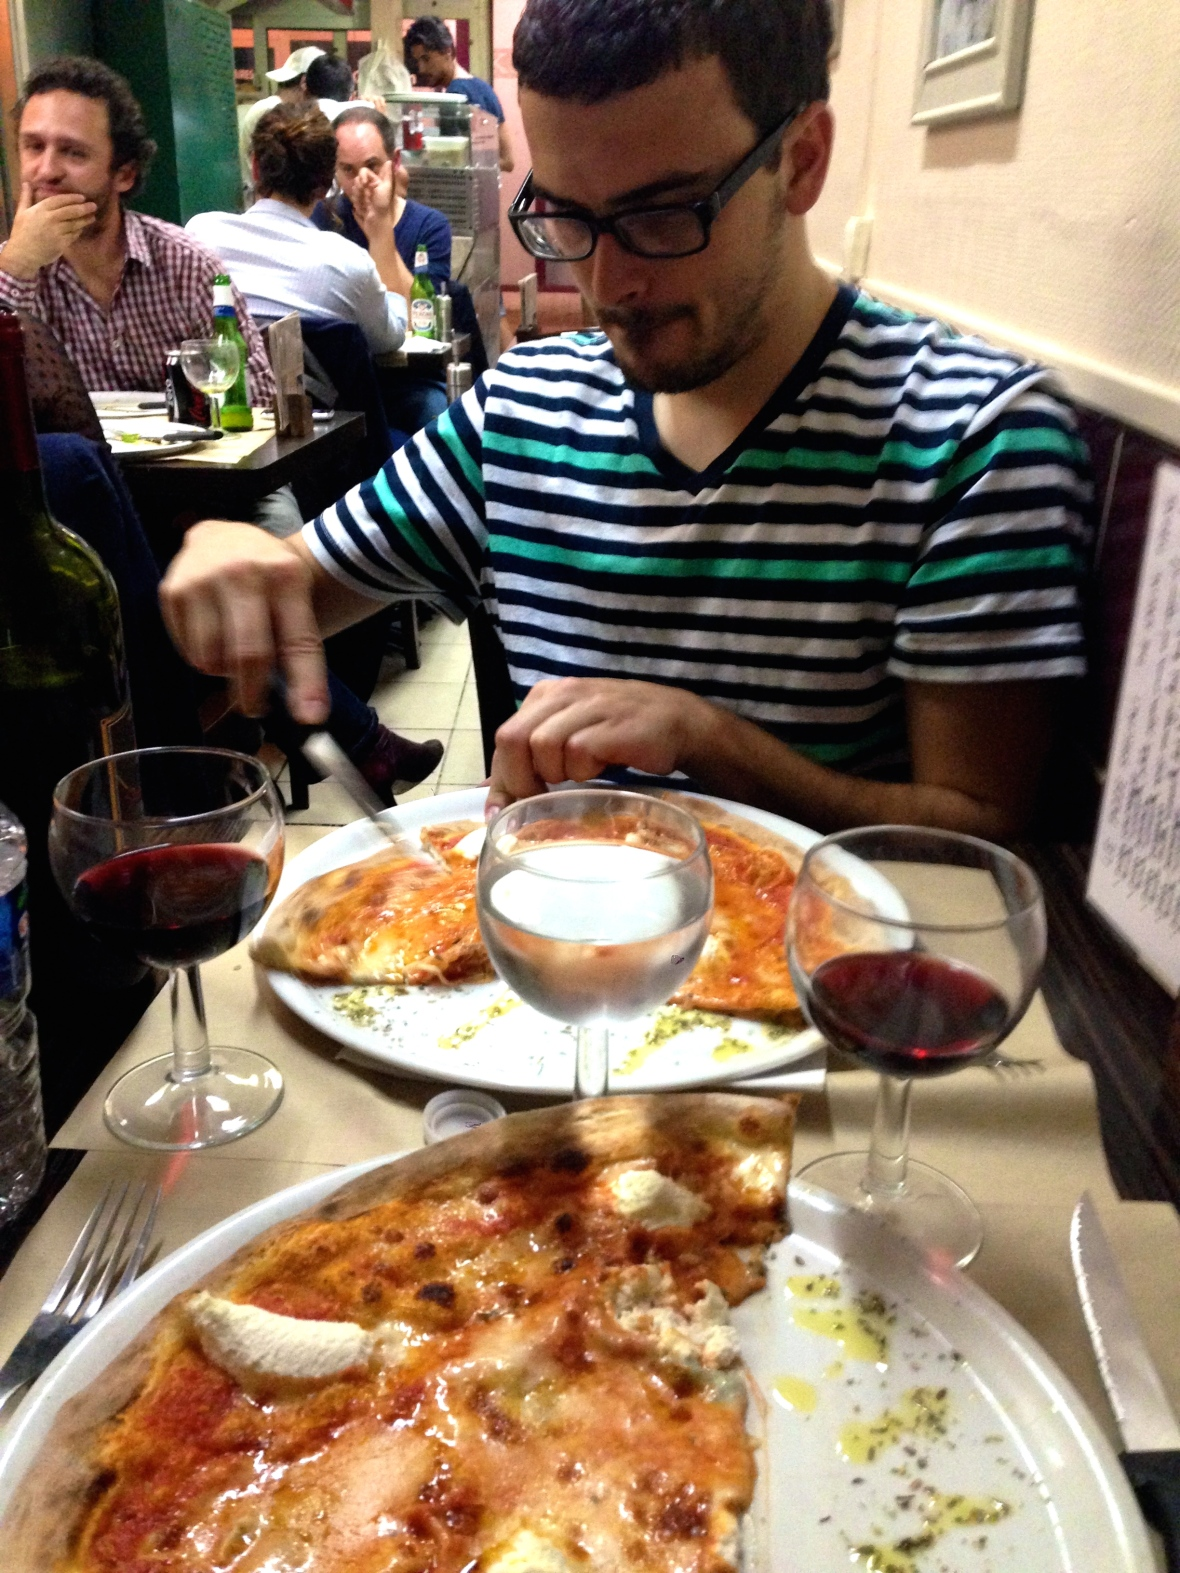 Pizza Rossi - Paris, France Two Days in Paris via Smile There's GIn